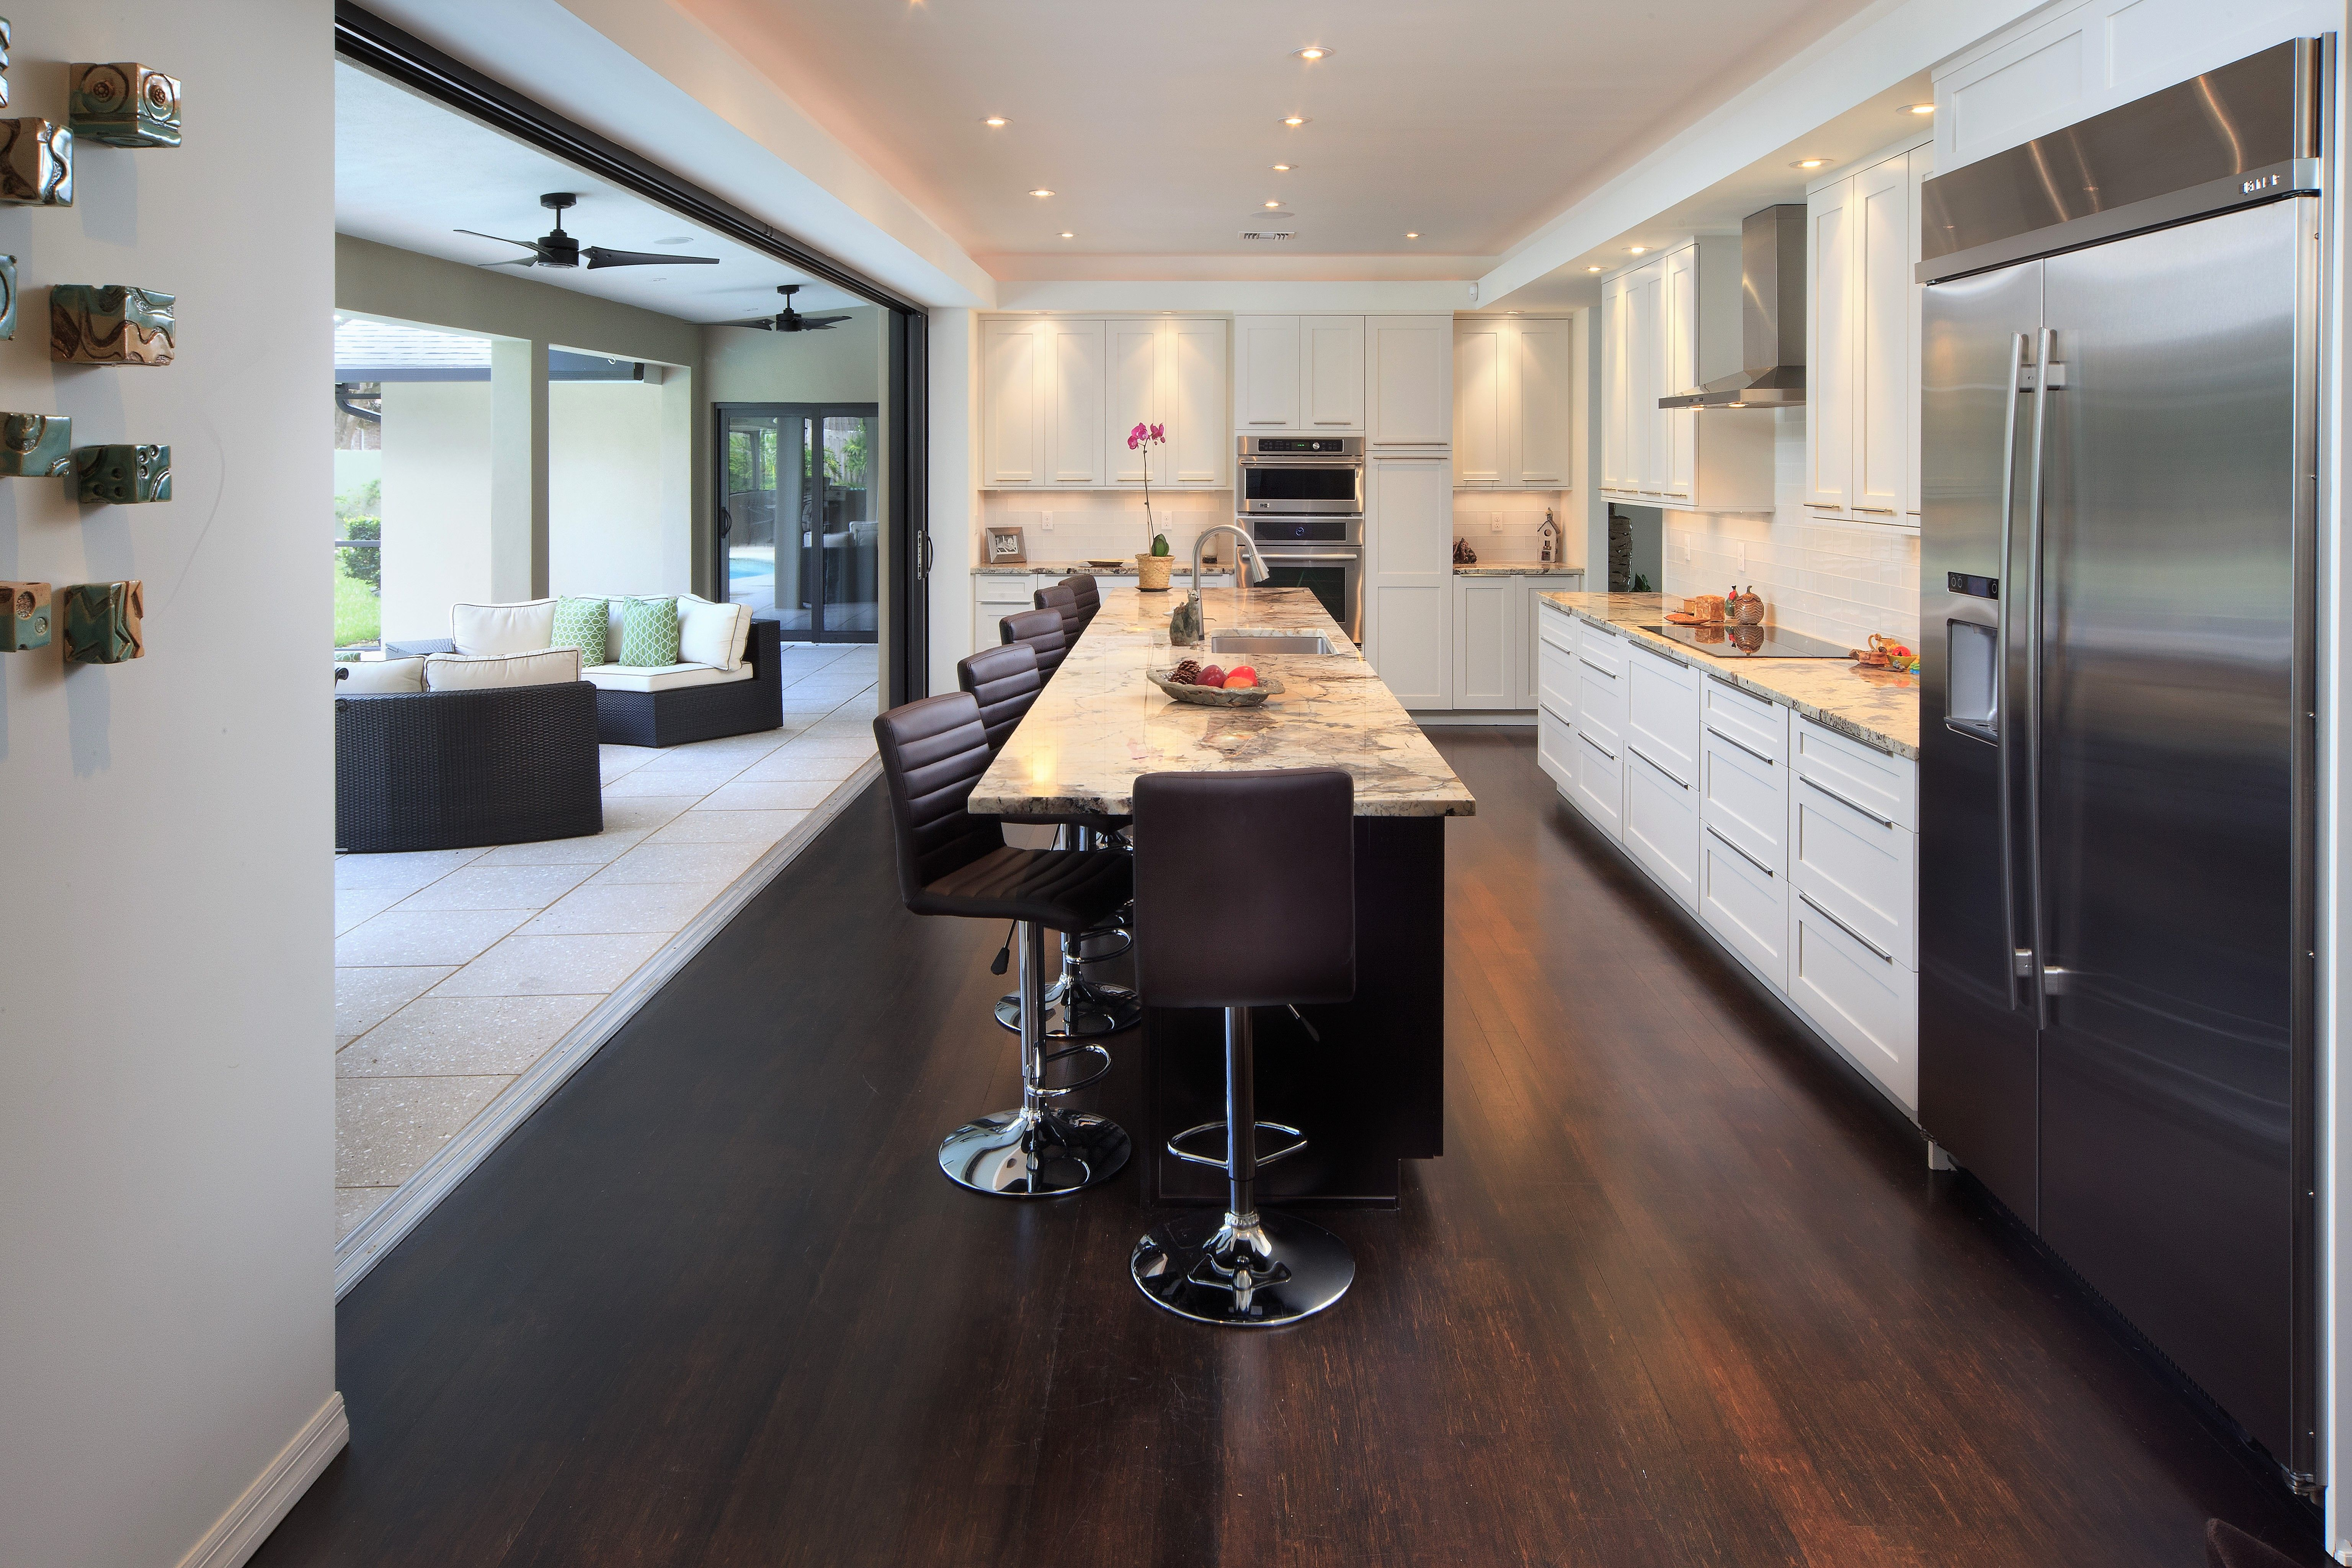 This Modern Kitchen With Shaker Style Cabinets Was Designed By